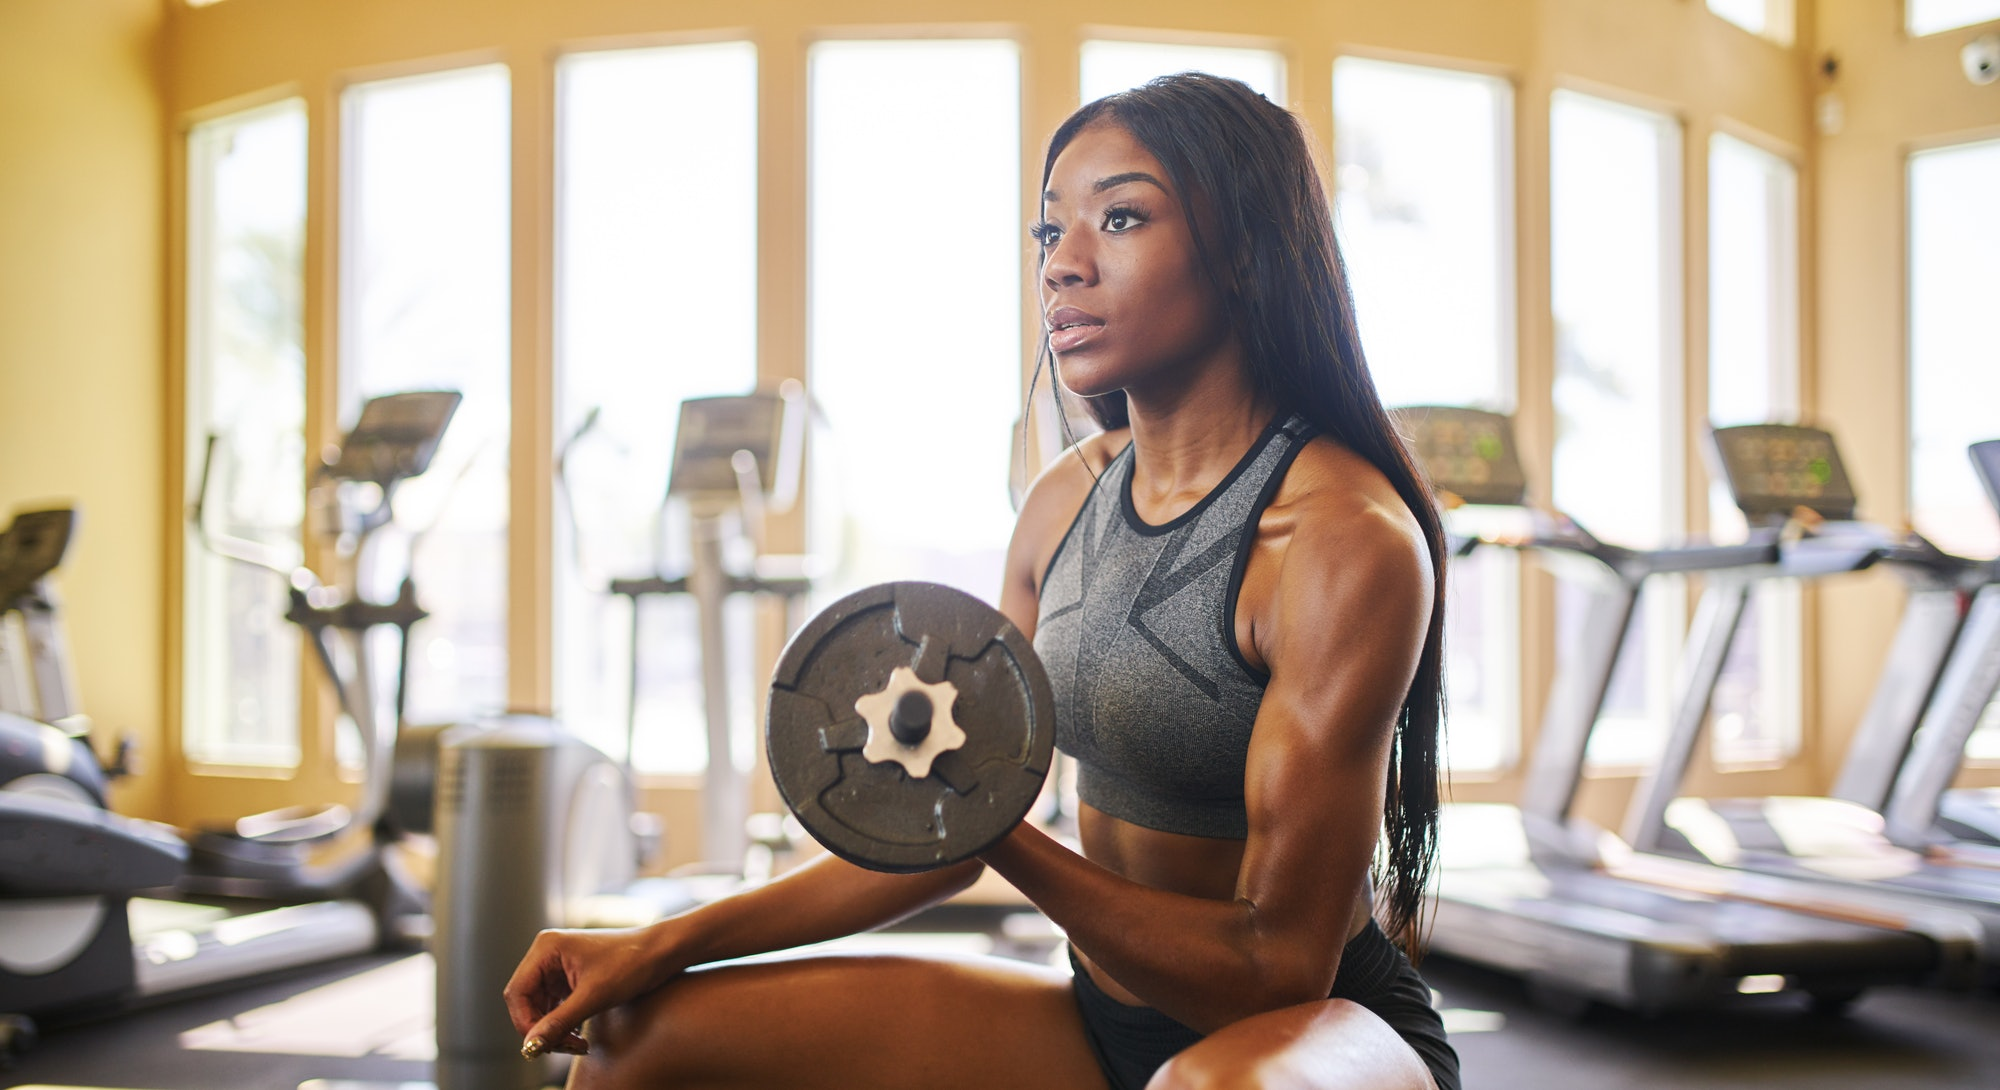 A person with braids sits on a bench in a gym and performs seated dumbbell curls. Dumbbell curls can be integrated into pretty much any workout.